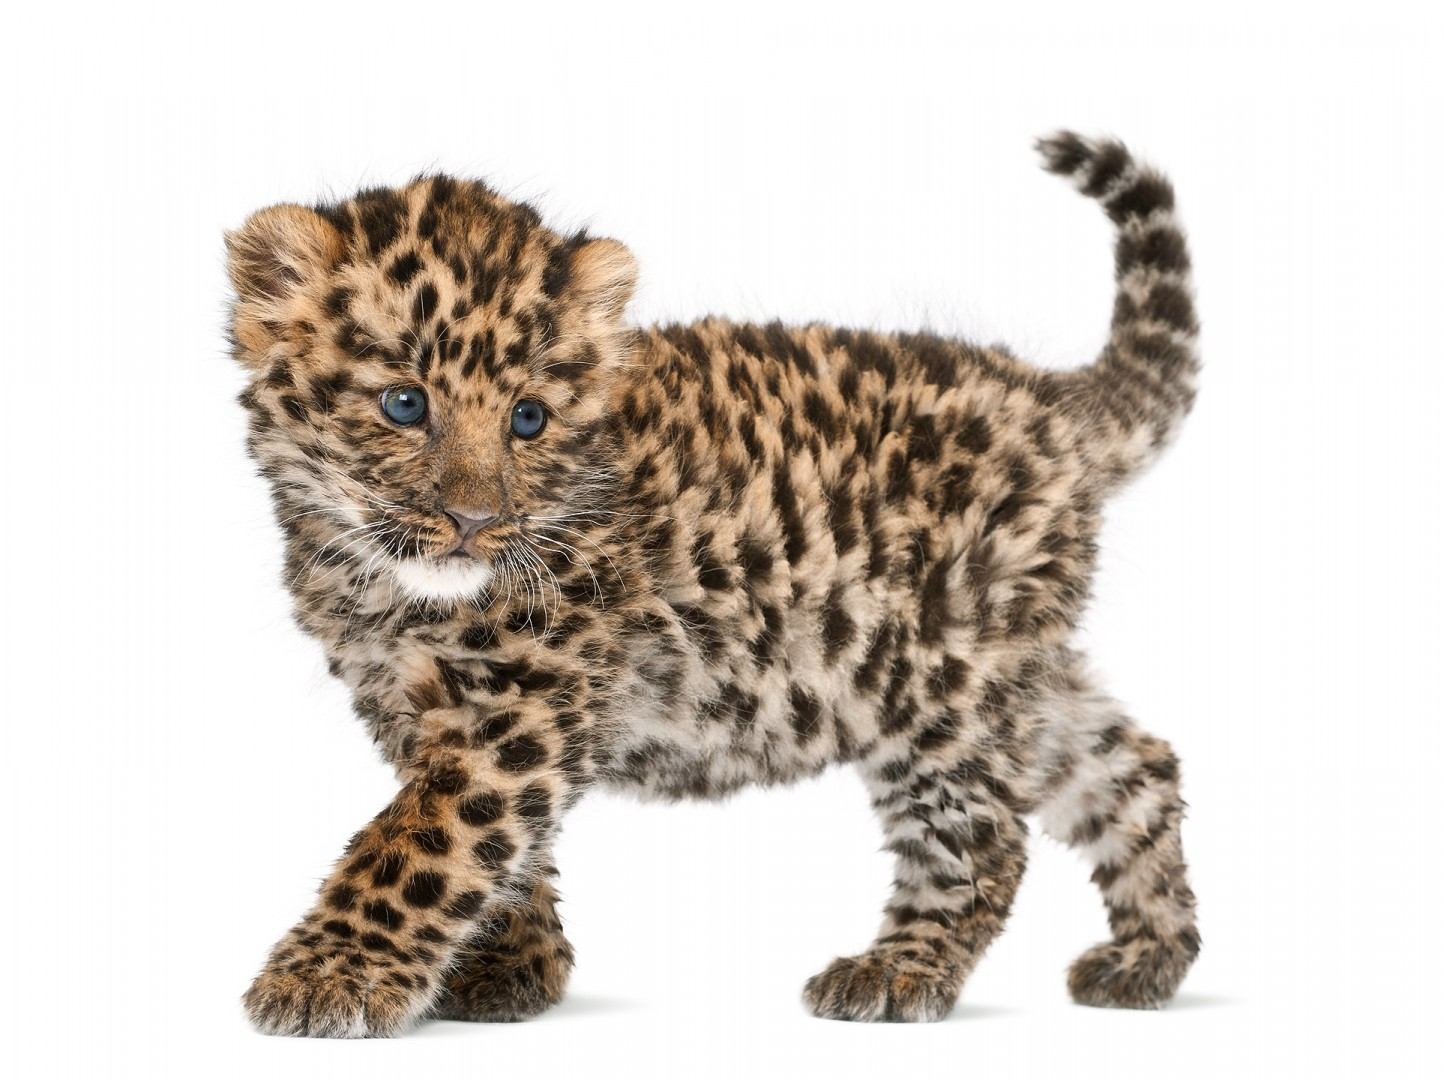 Amur leopard cub - Part of the book Zoo'M : http://goo.gl/g7j31Q